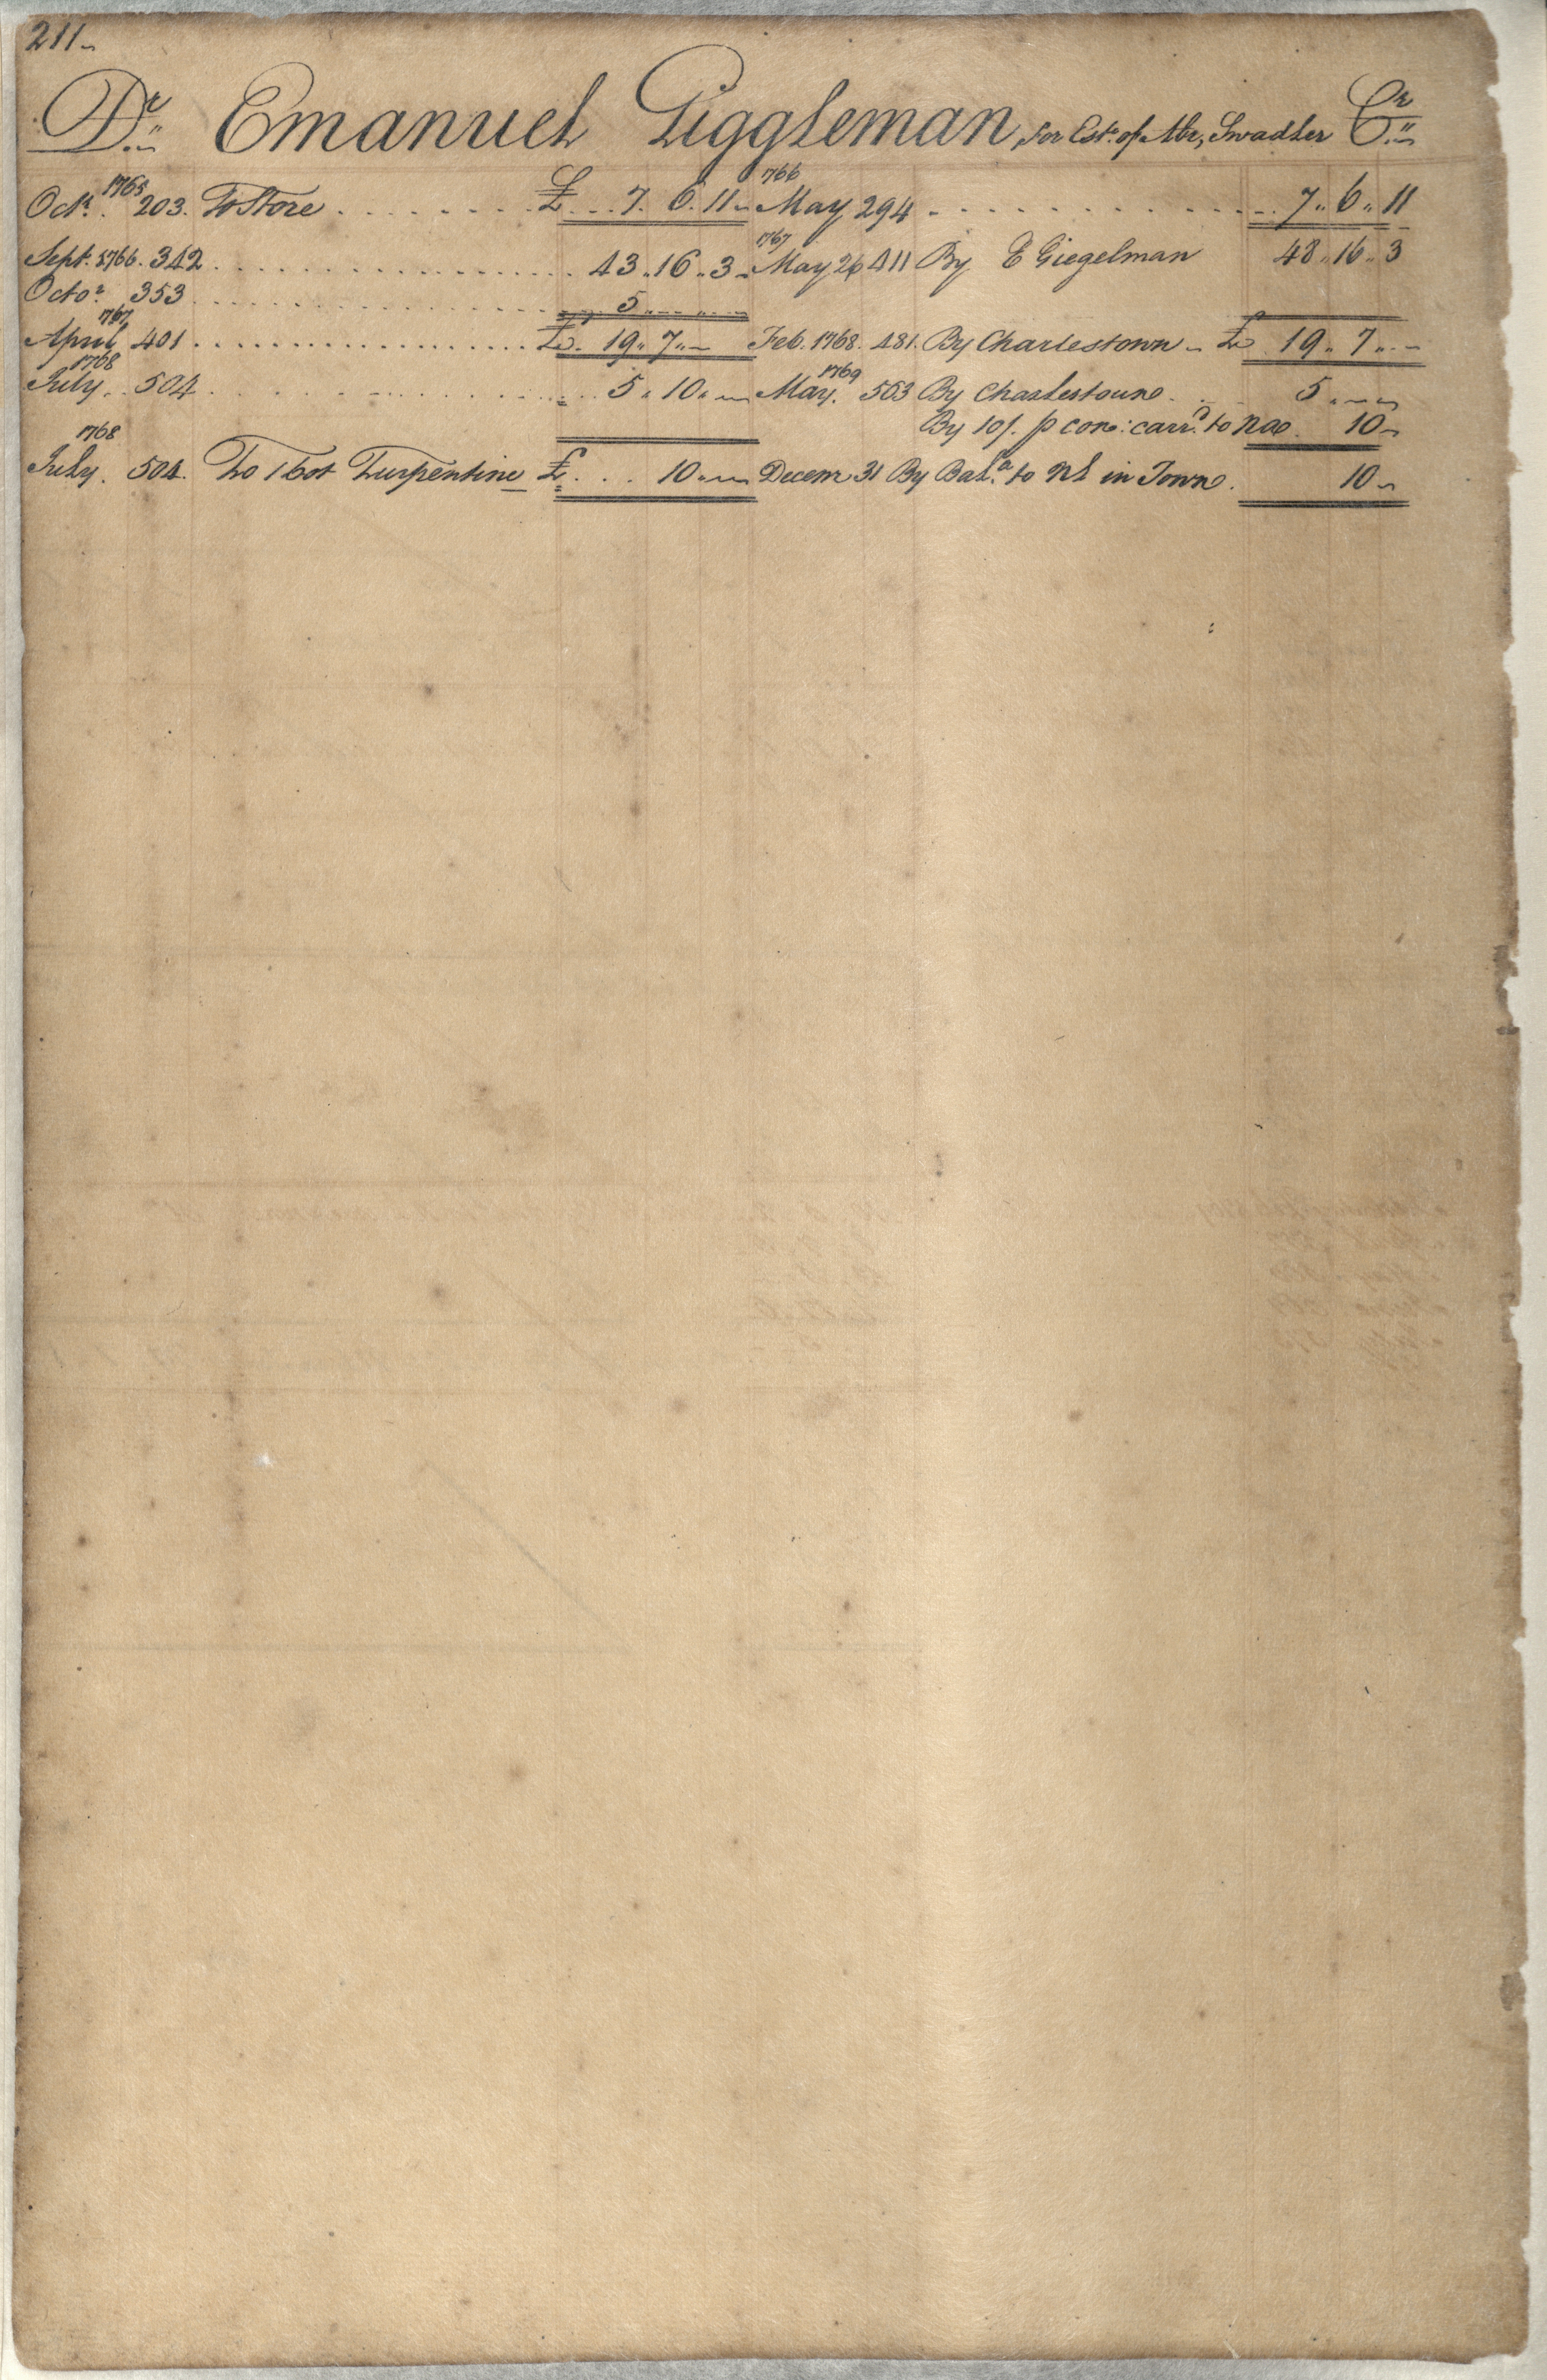 Plowden Weston's Business Ledger, page 211